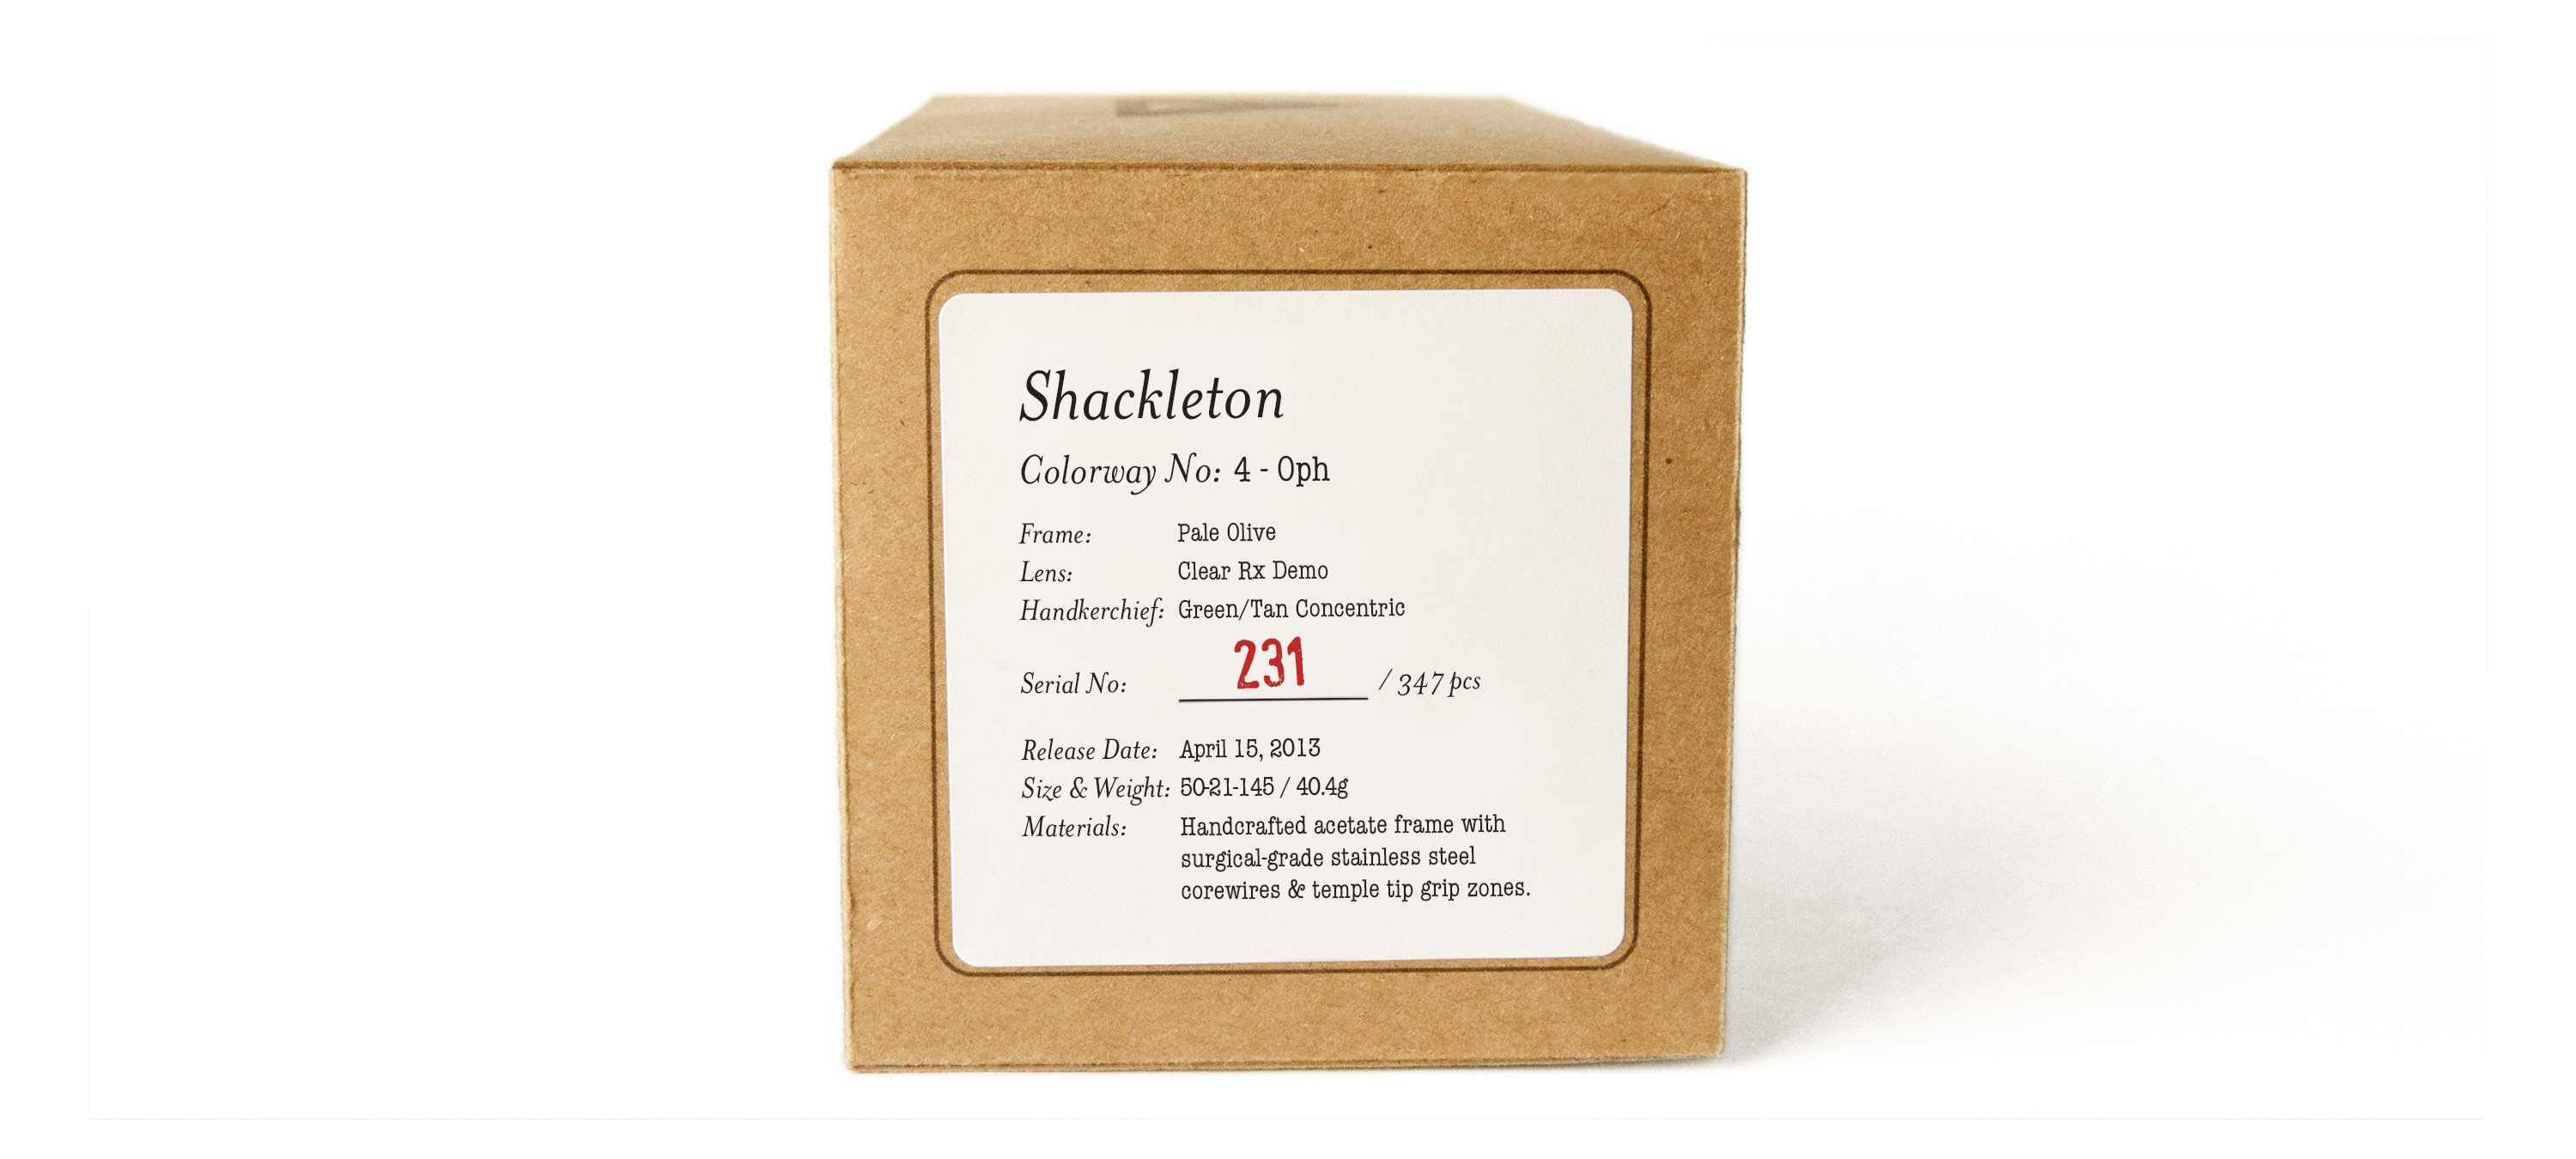 outer_pkg_label_shackleton_oph_04